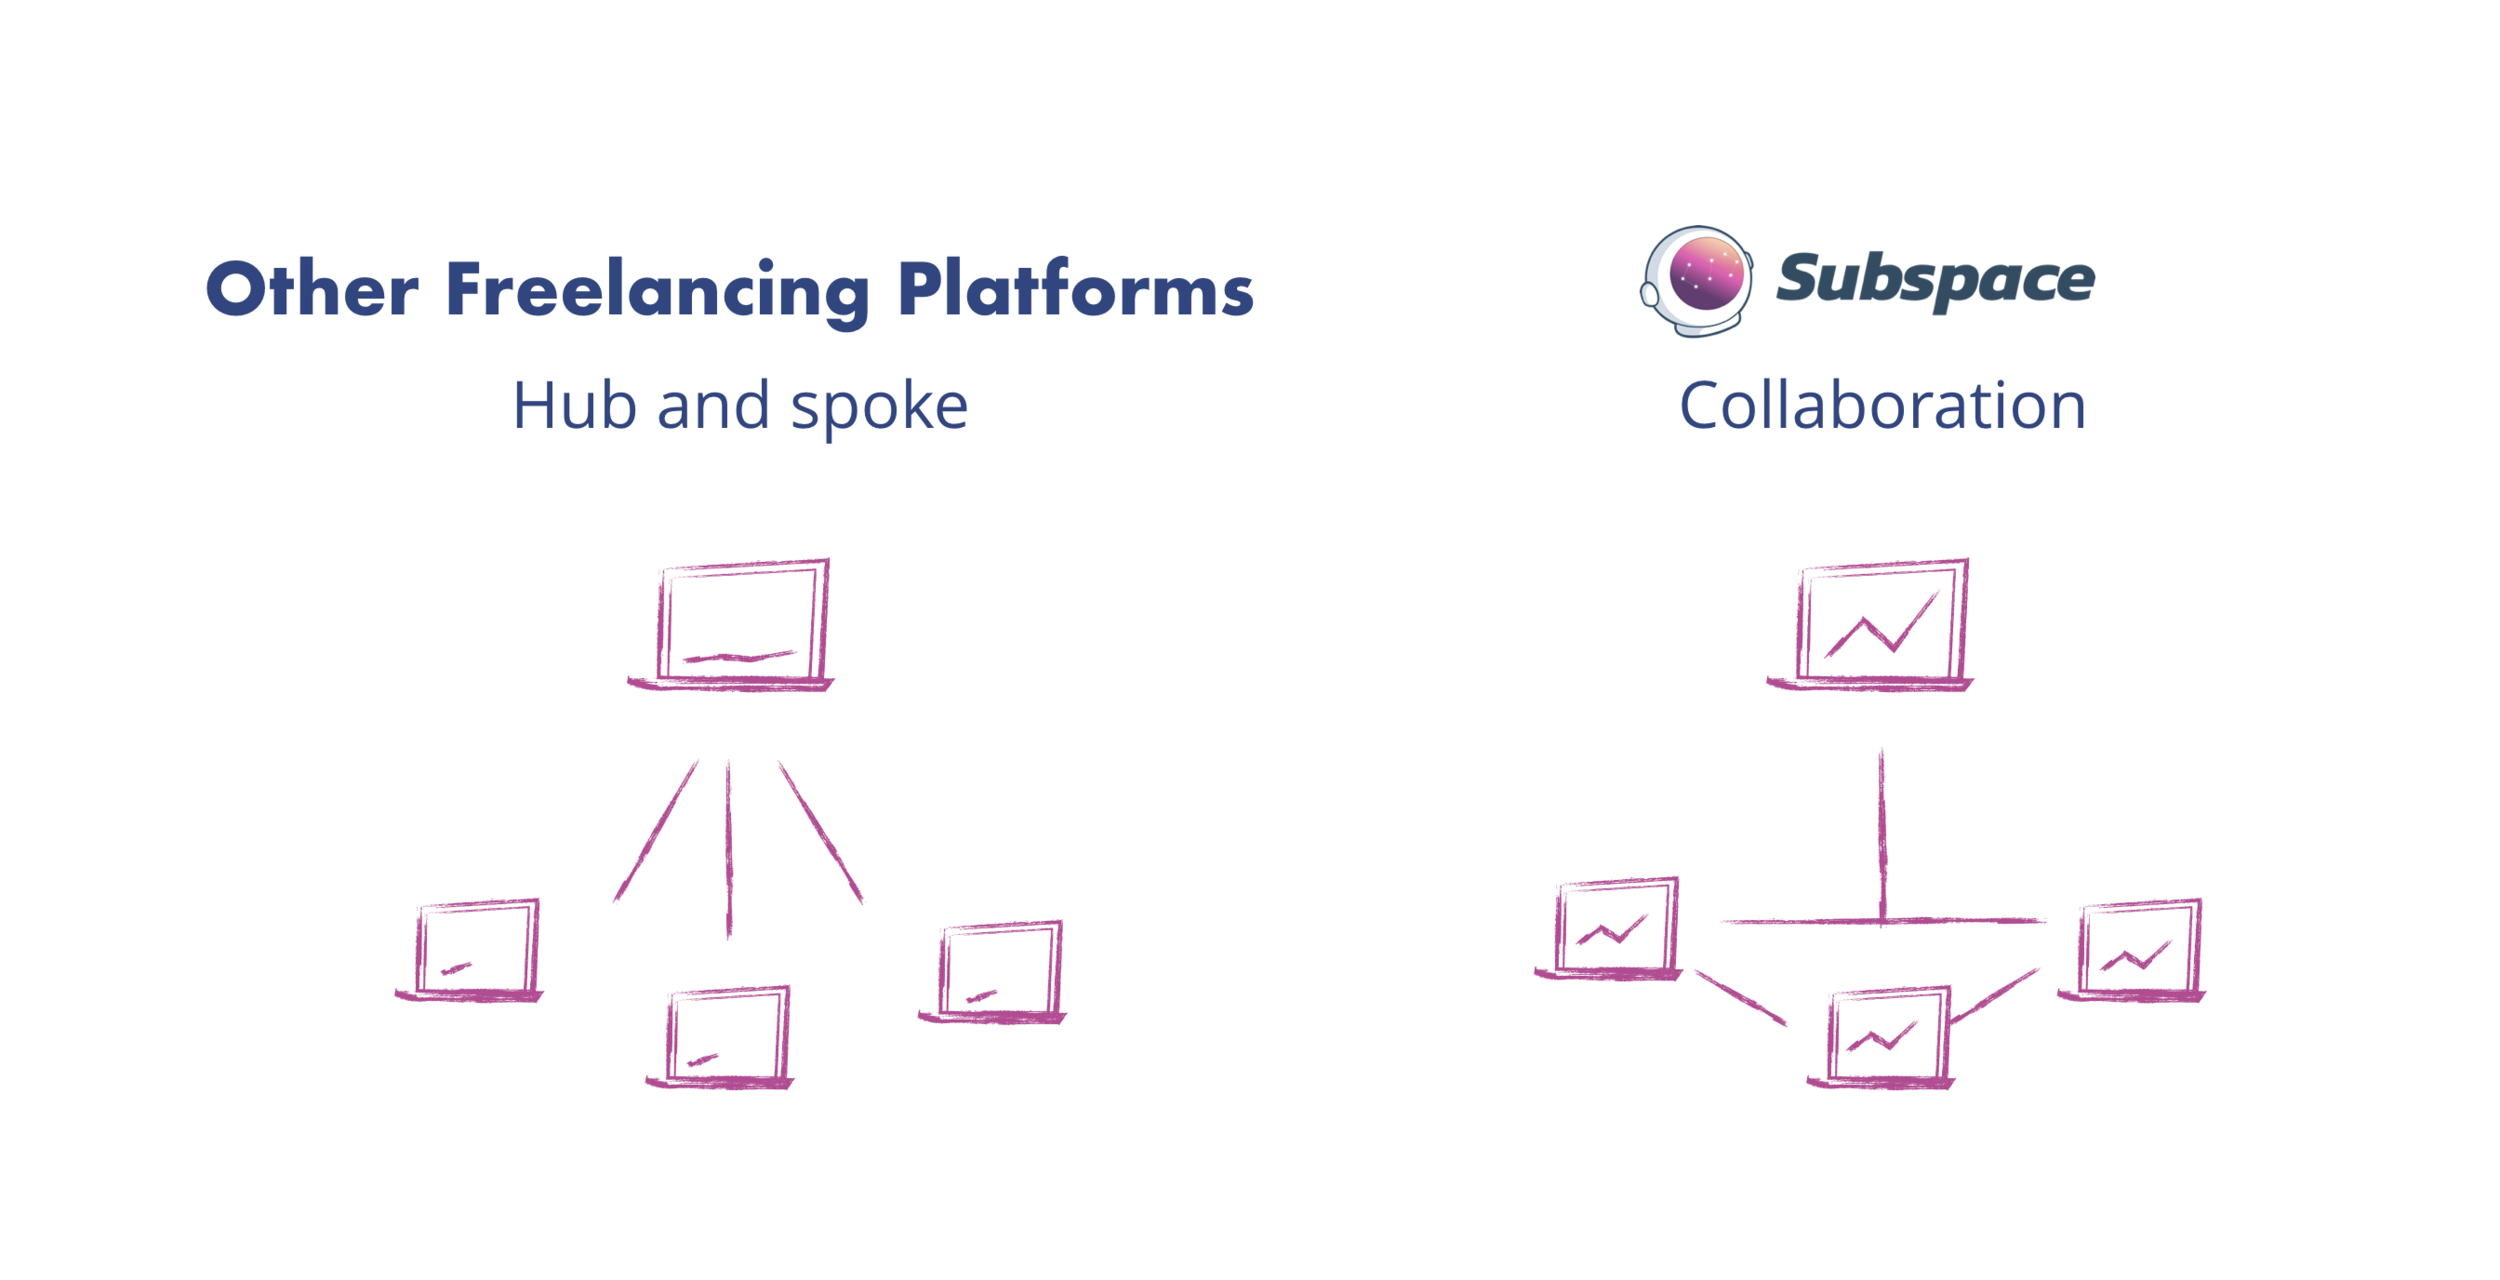 subspace allows many developers to work together